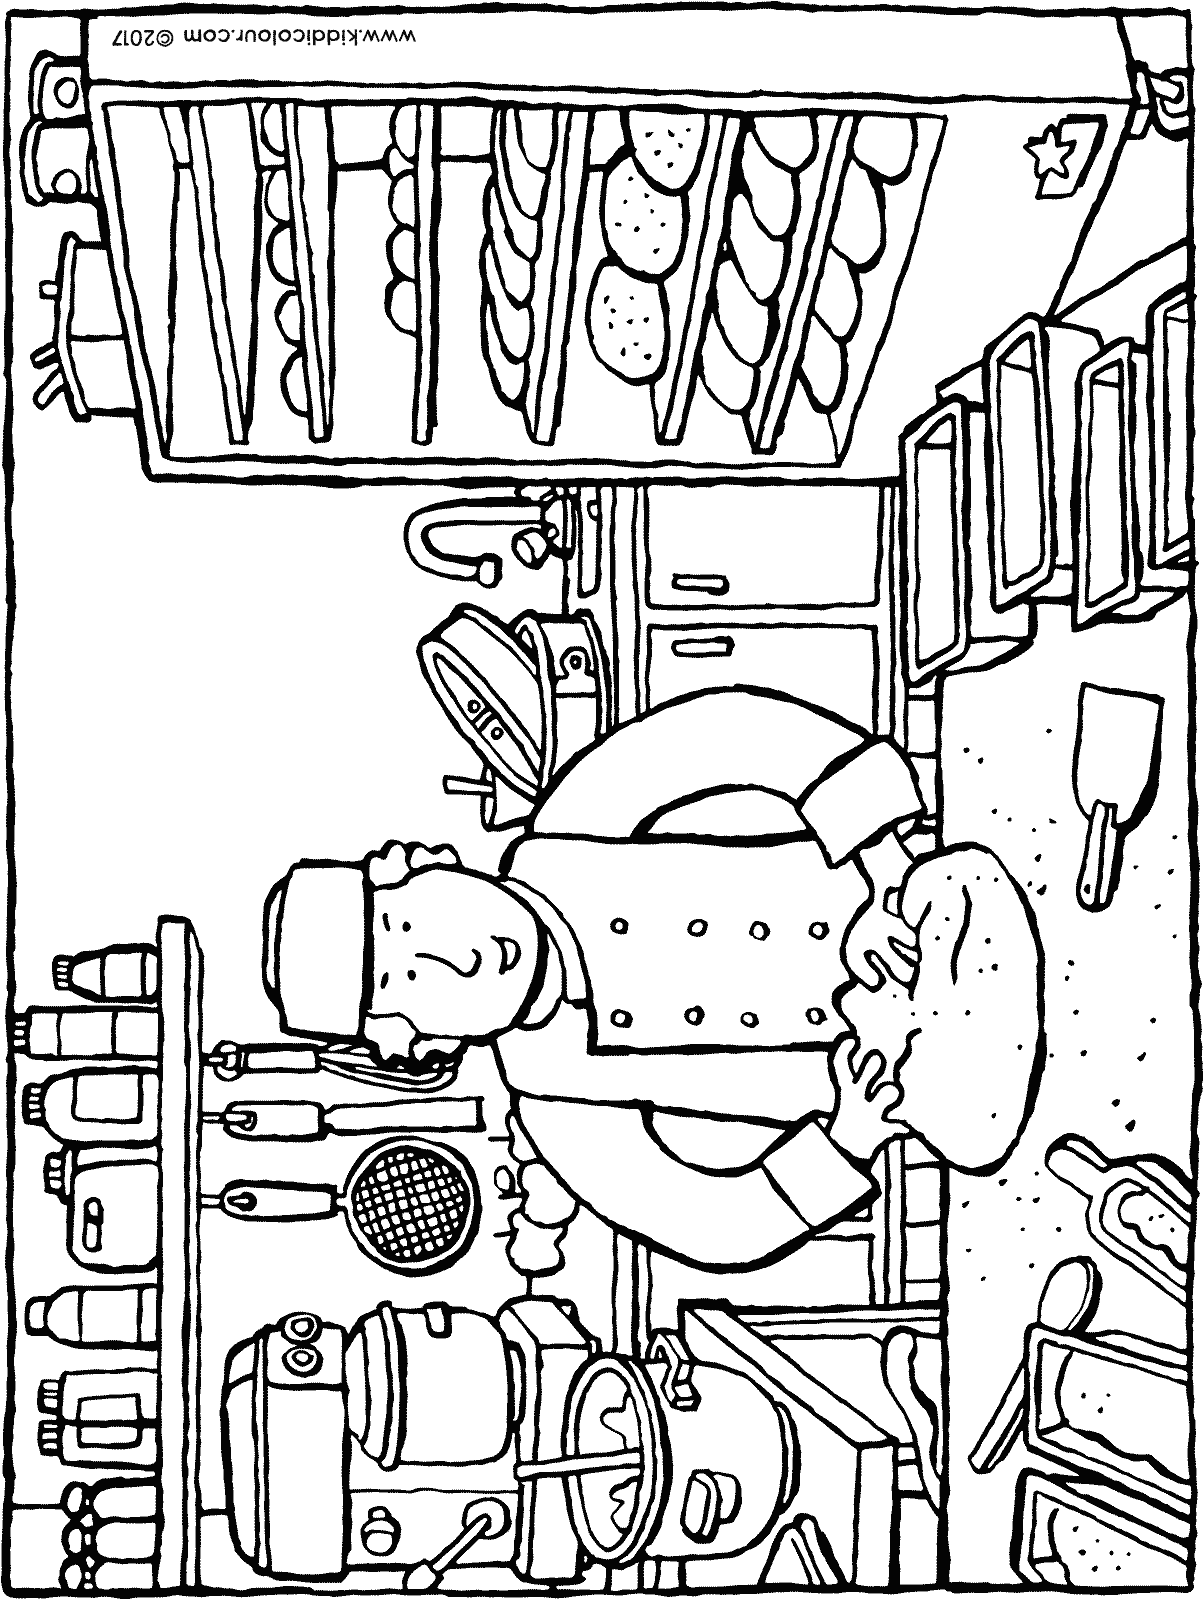 baker baking bread baker baking bread colouring page 01h - Baker Coloring Page